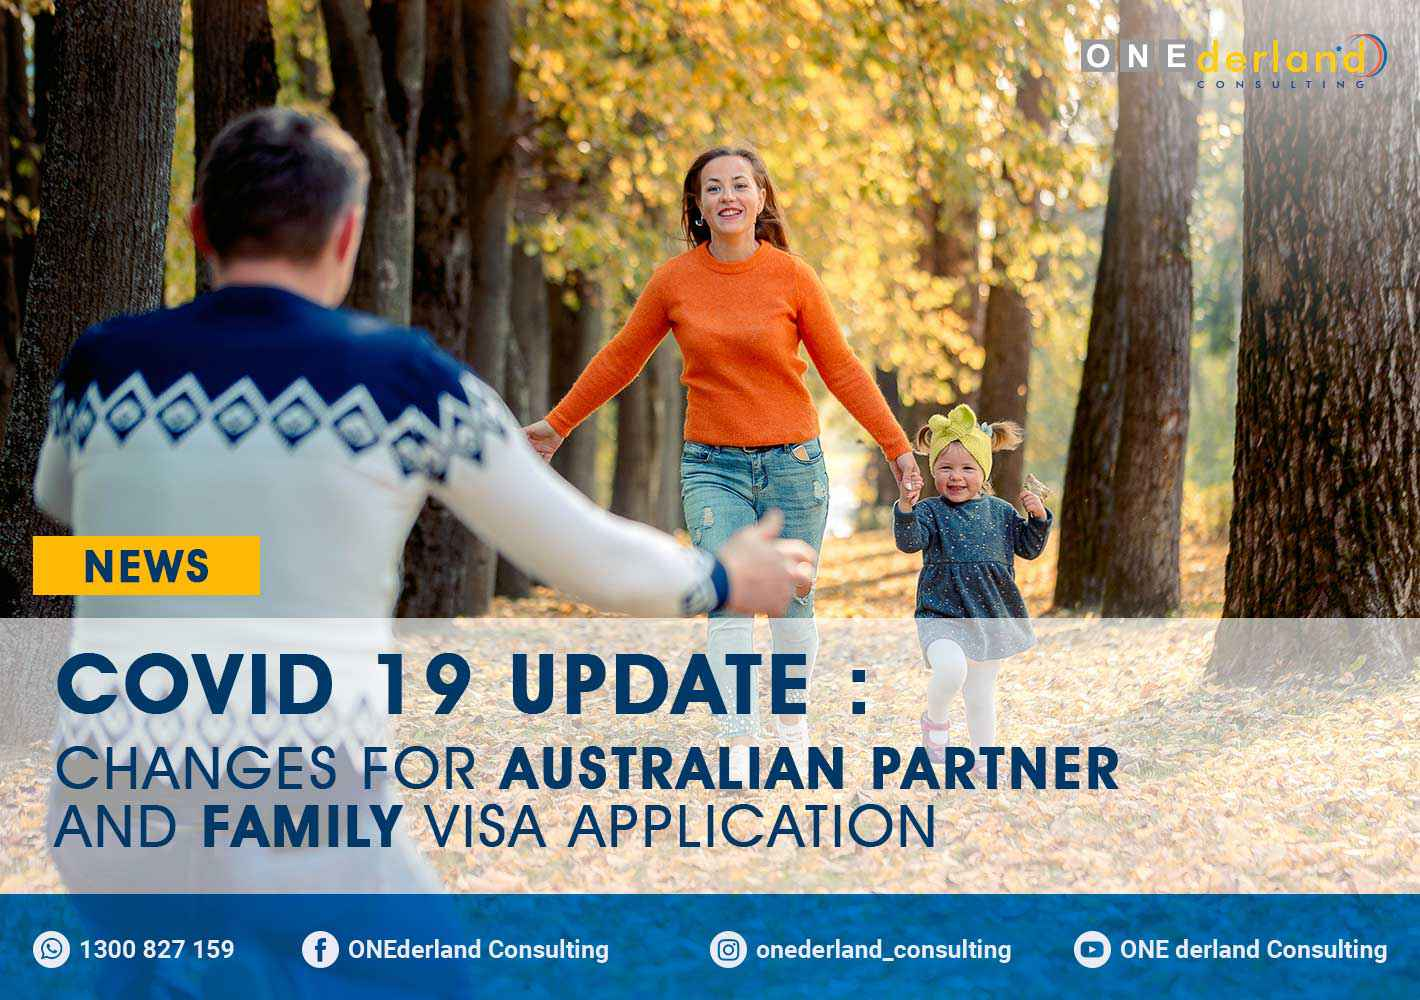 Changes for Partner and Family Visa Australia Will Be Implemented in Early 2021